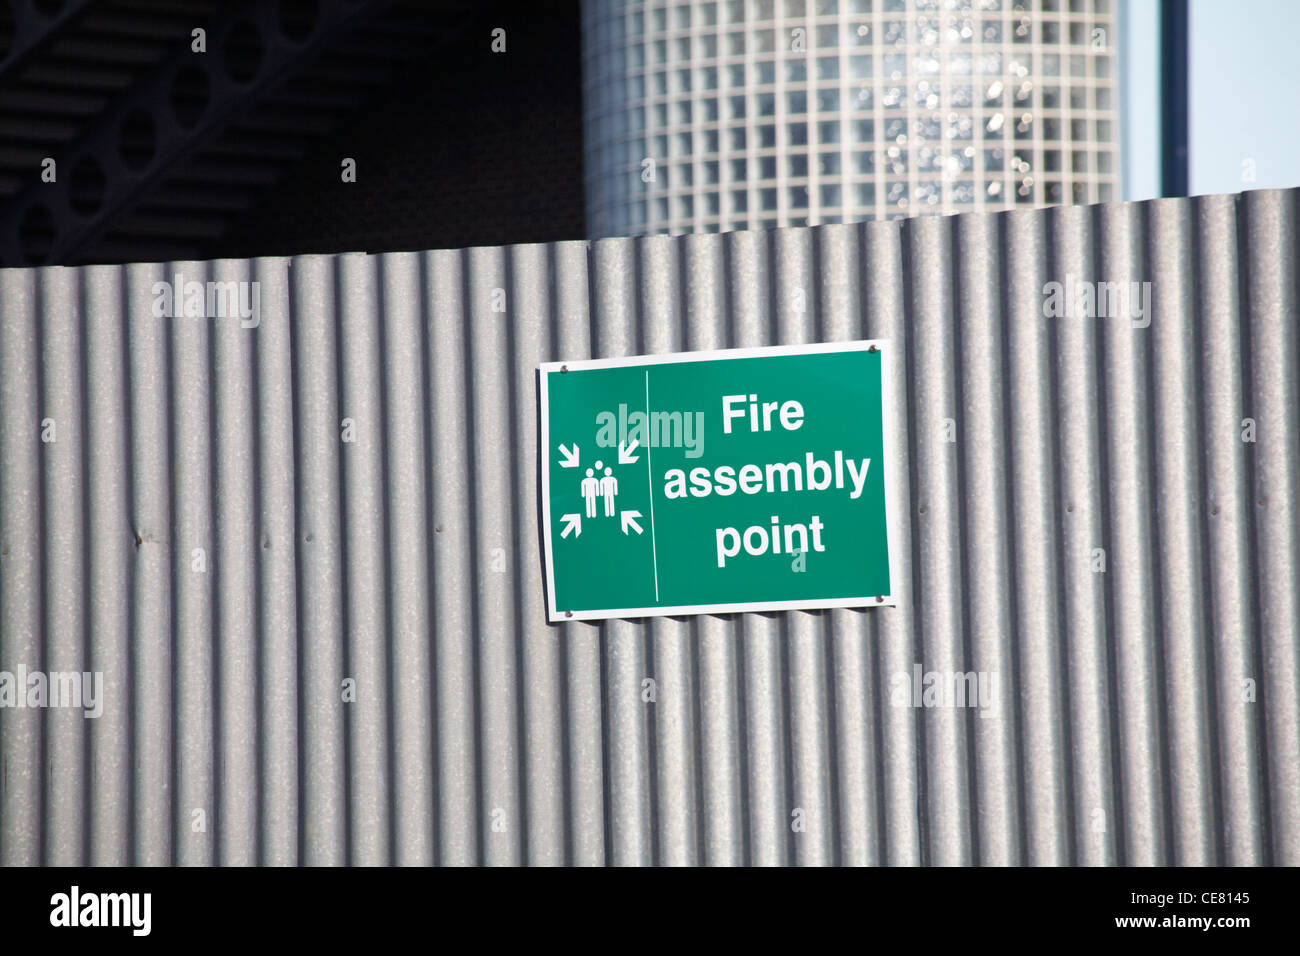 Fire assembly point sign on corrugated iron outside building - Stock Image